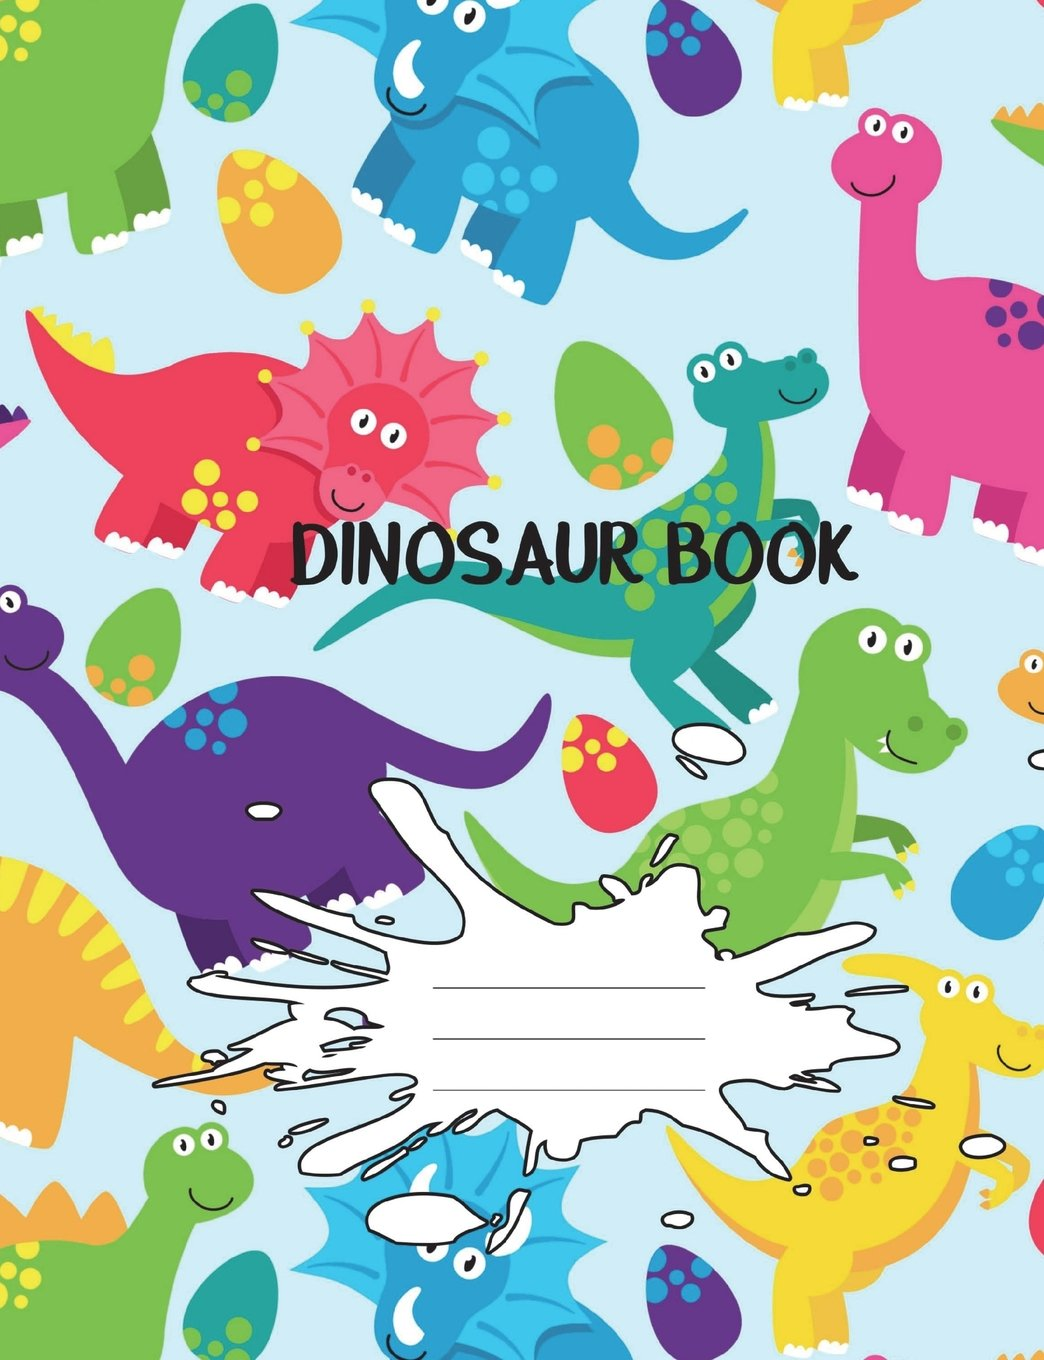 Download Dinosaur Book: Handwriting Practice Book For Kids Awesome Dinosaur  Penmanship Book For Boys And Girls Pre-K- 3rd Grade Double Lines With Dotted ... Handwriting Paper Dino Vol 7 (Volume 7) pdf epub